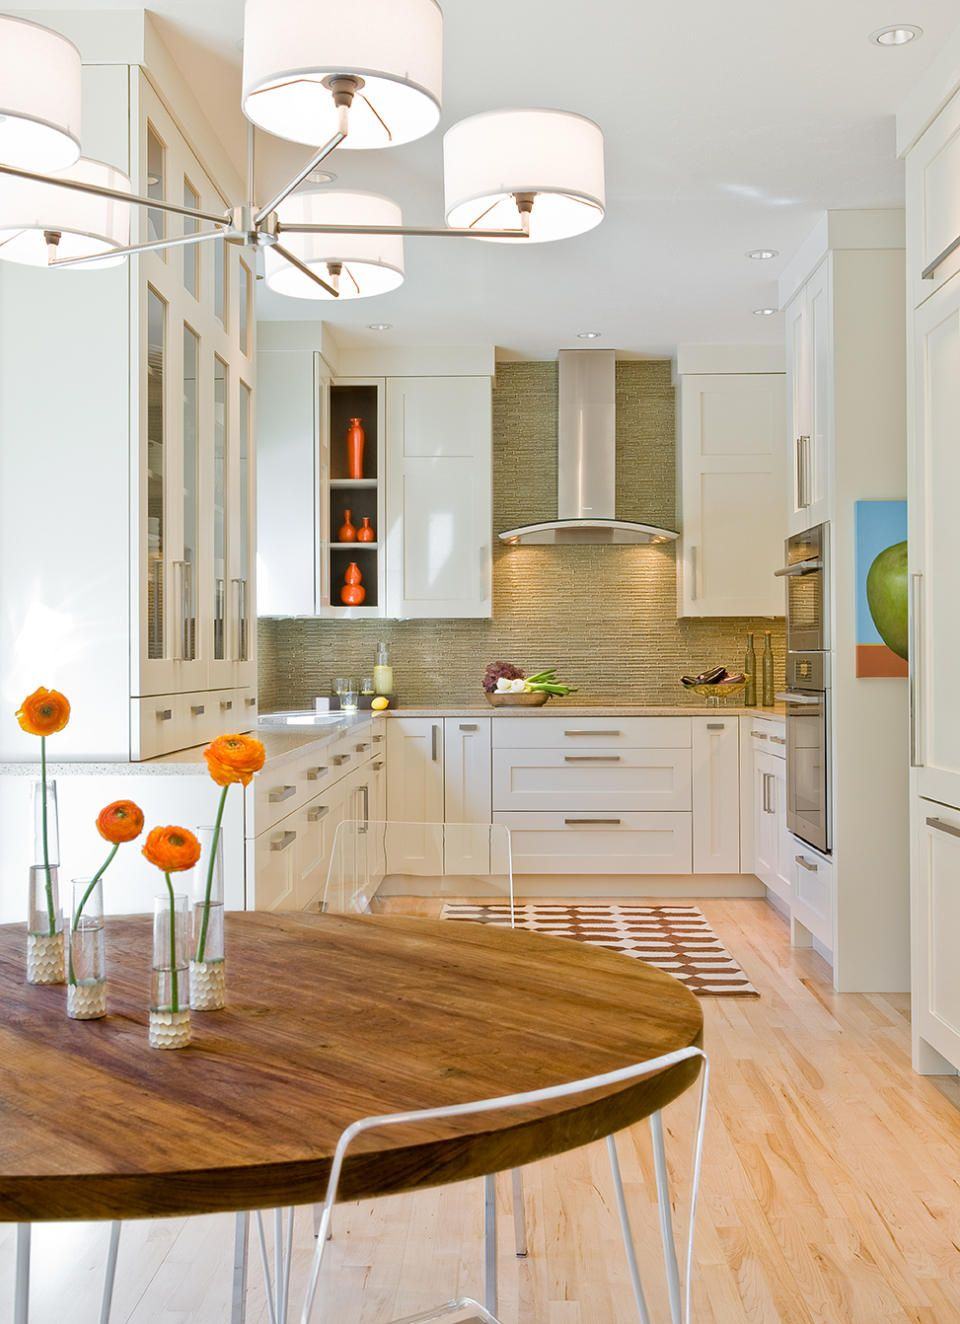 Kitchen Designers Boston Magnificent Modern Kitchen Design Photovenegas And Companya Boston Inspiration